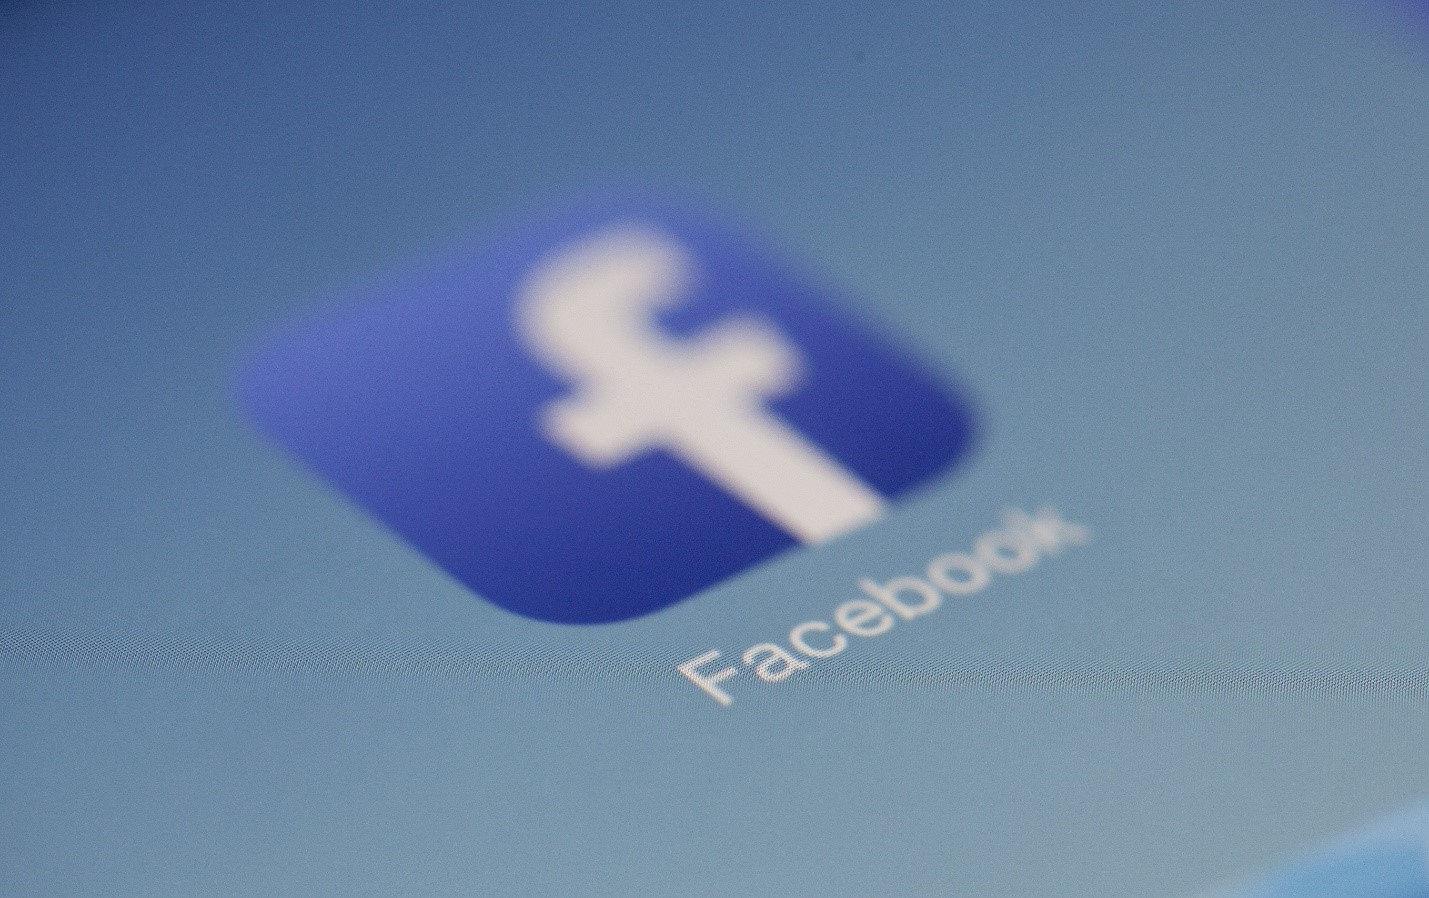 Leaving Facebook could make you happier, study suggests